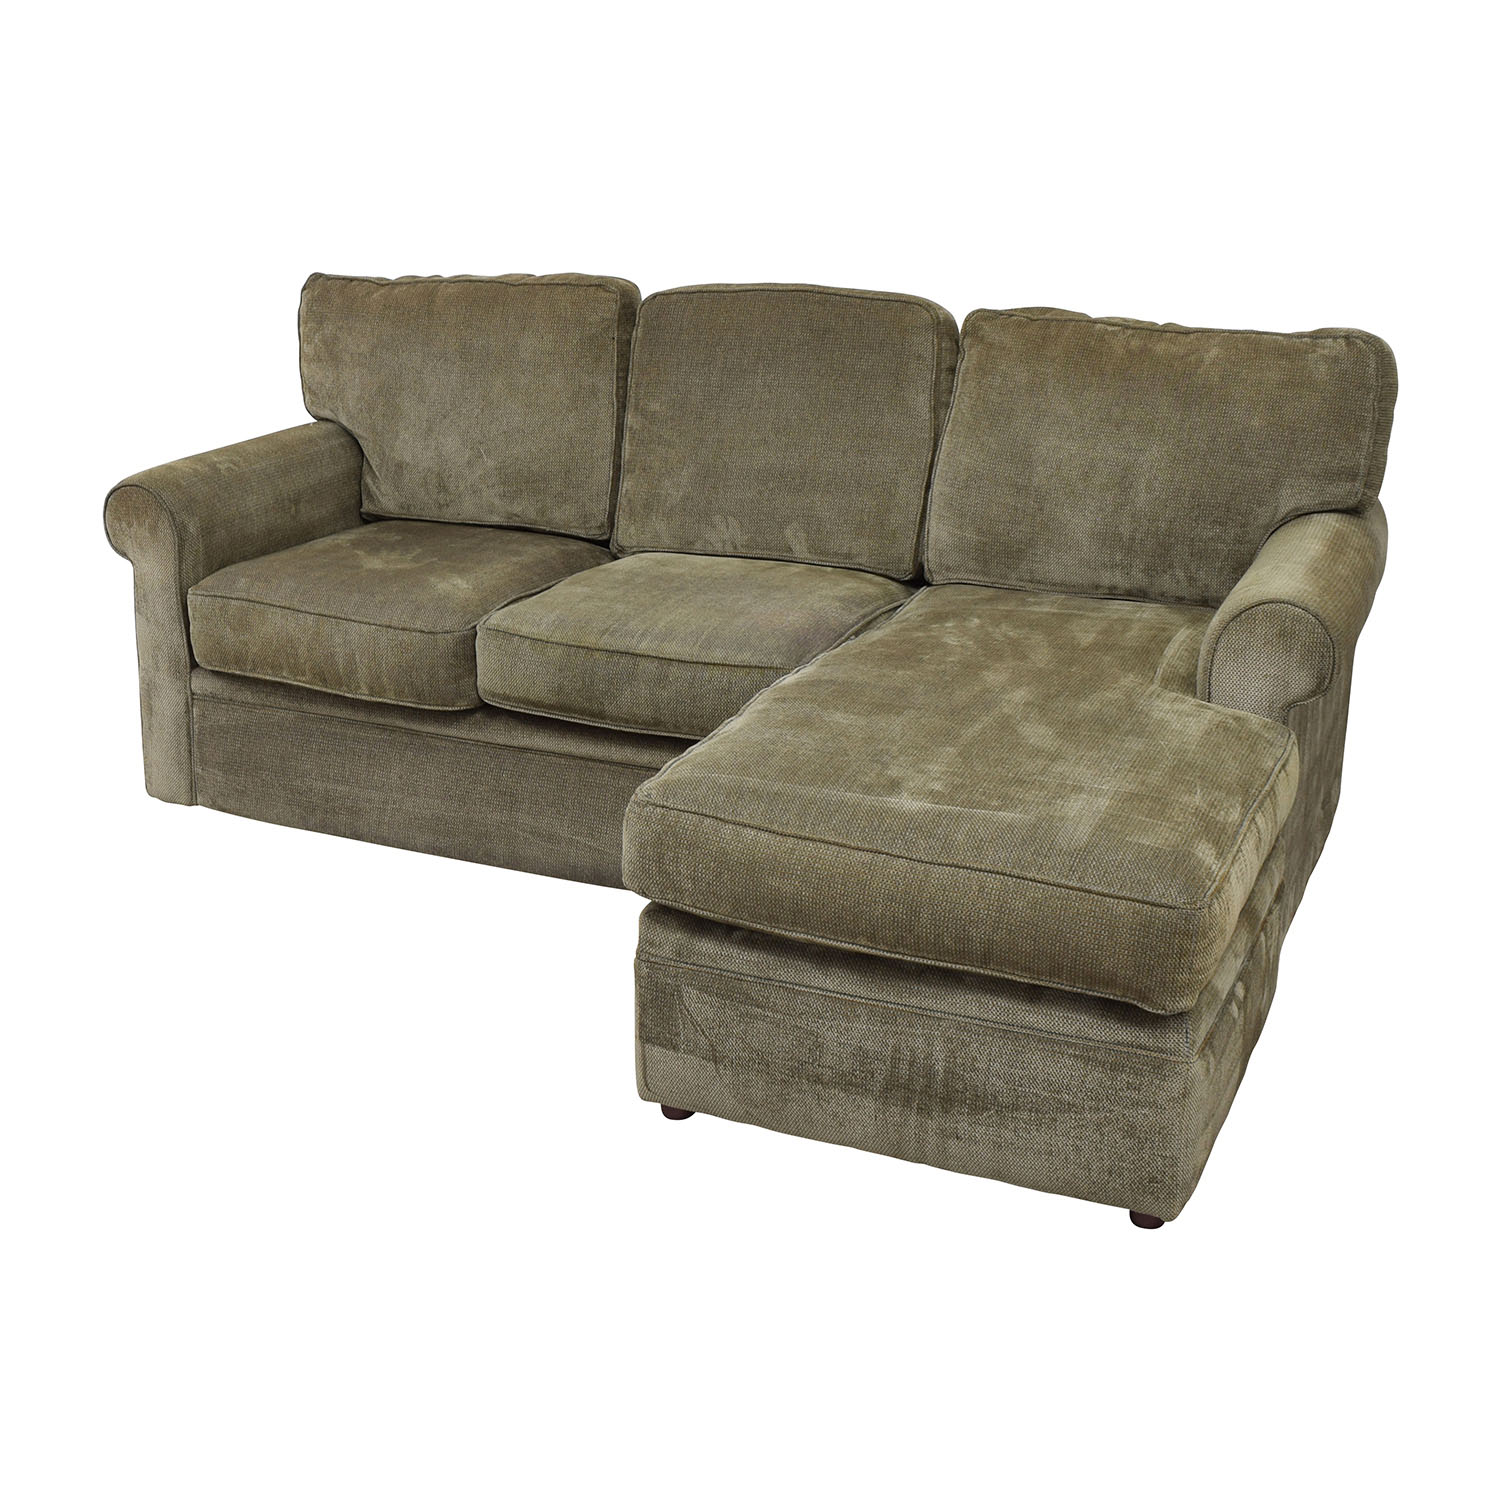 Rowe Furniture Rowe Furniture Green Sectional with Curved Arms nj